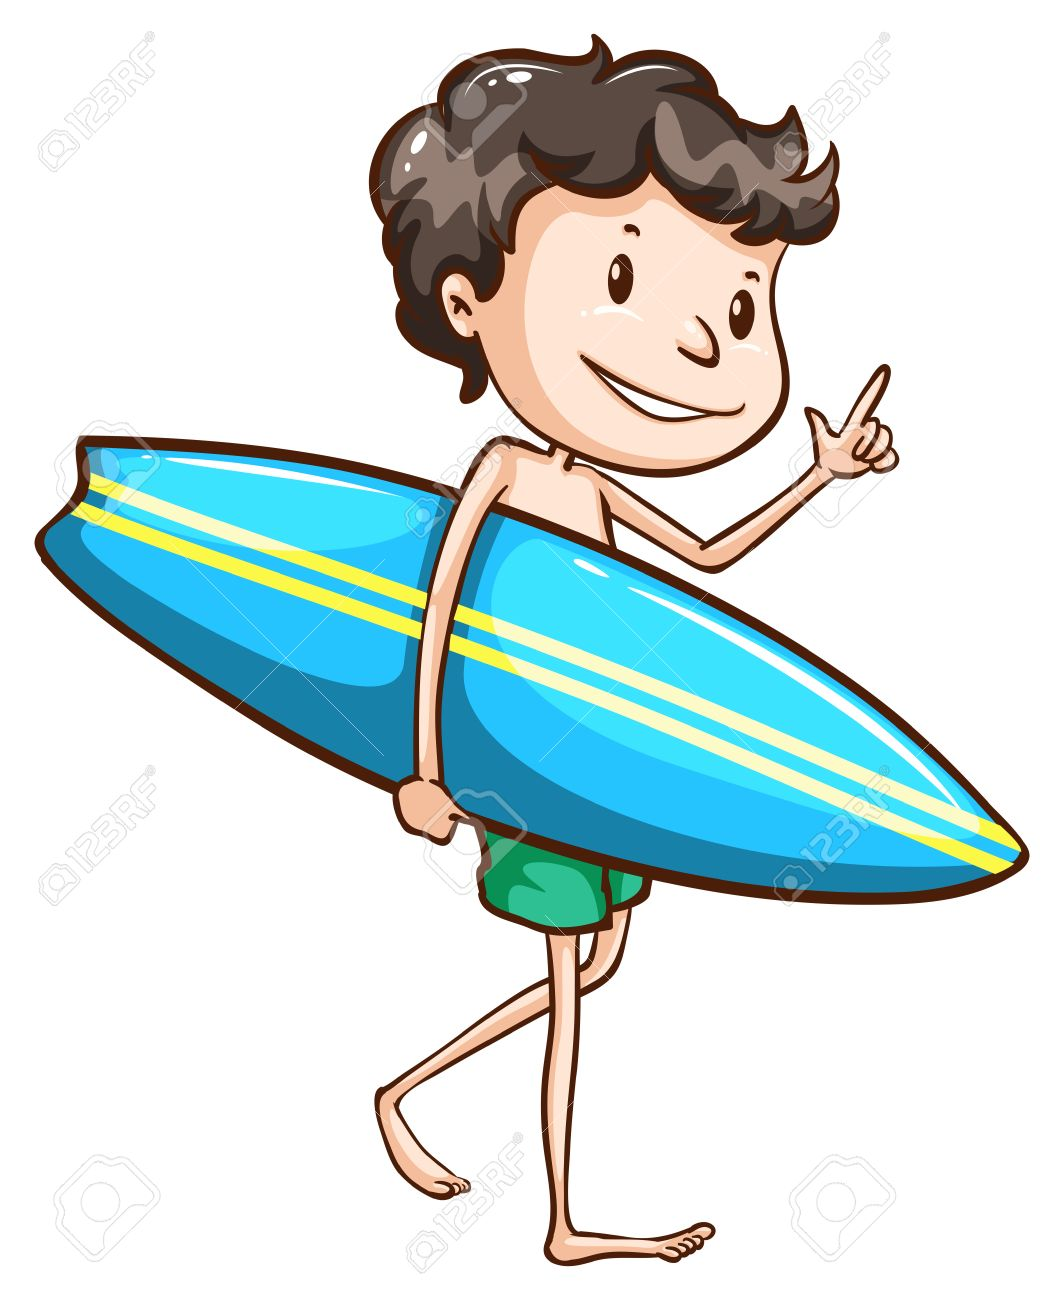 1064x1300 Illustration Of A Simple Drawing Of A Boy Going To The Beach